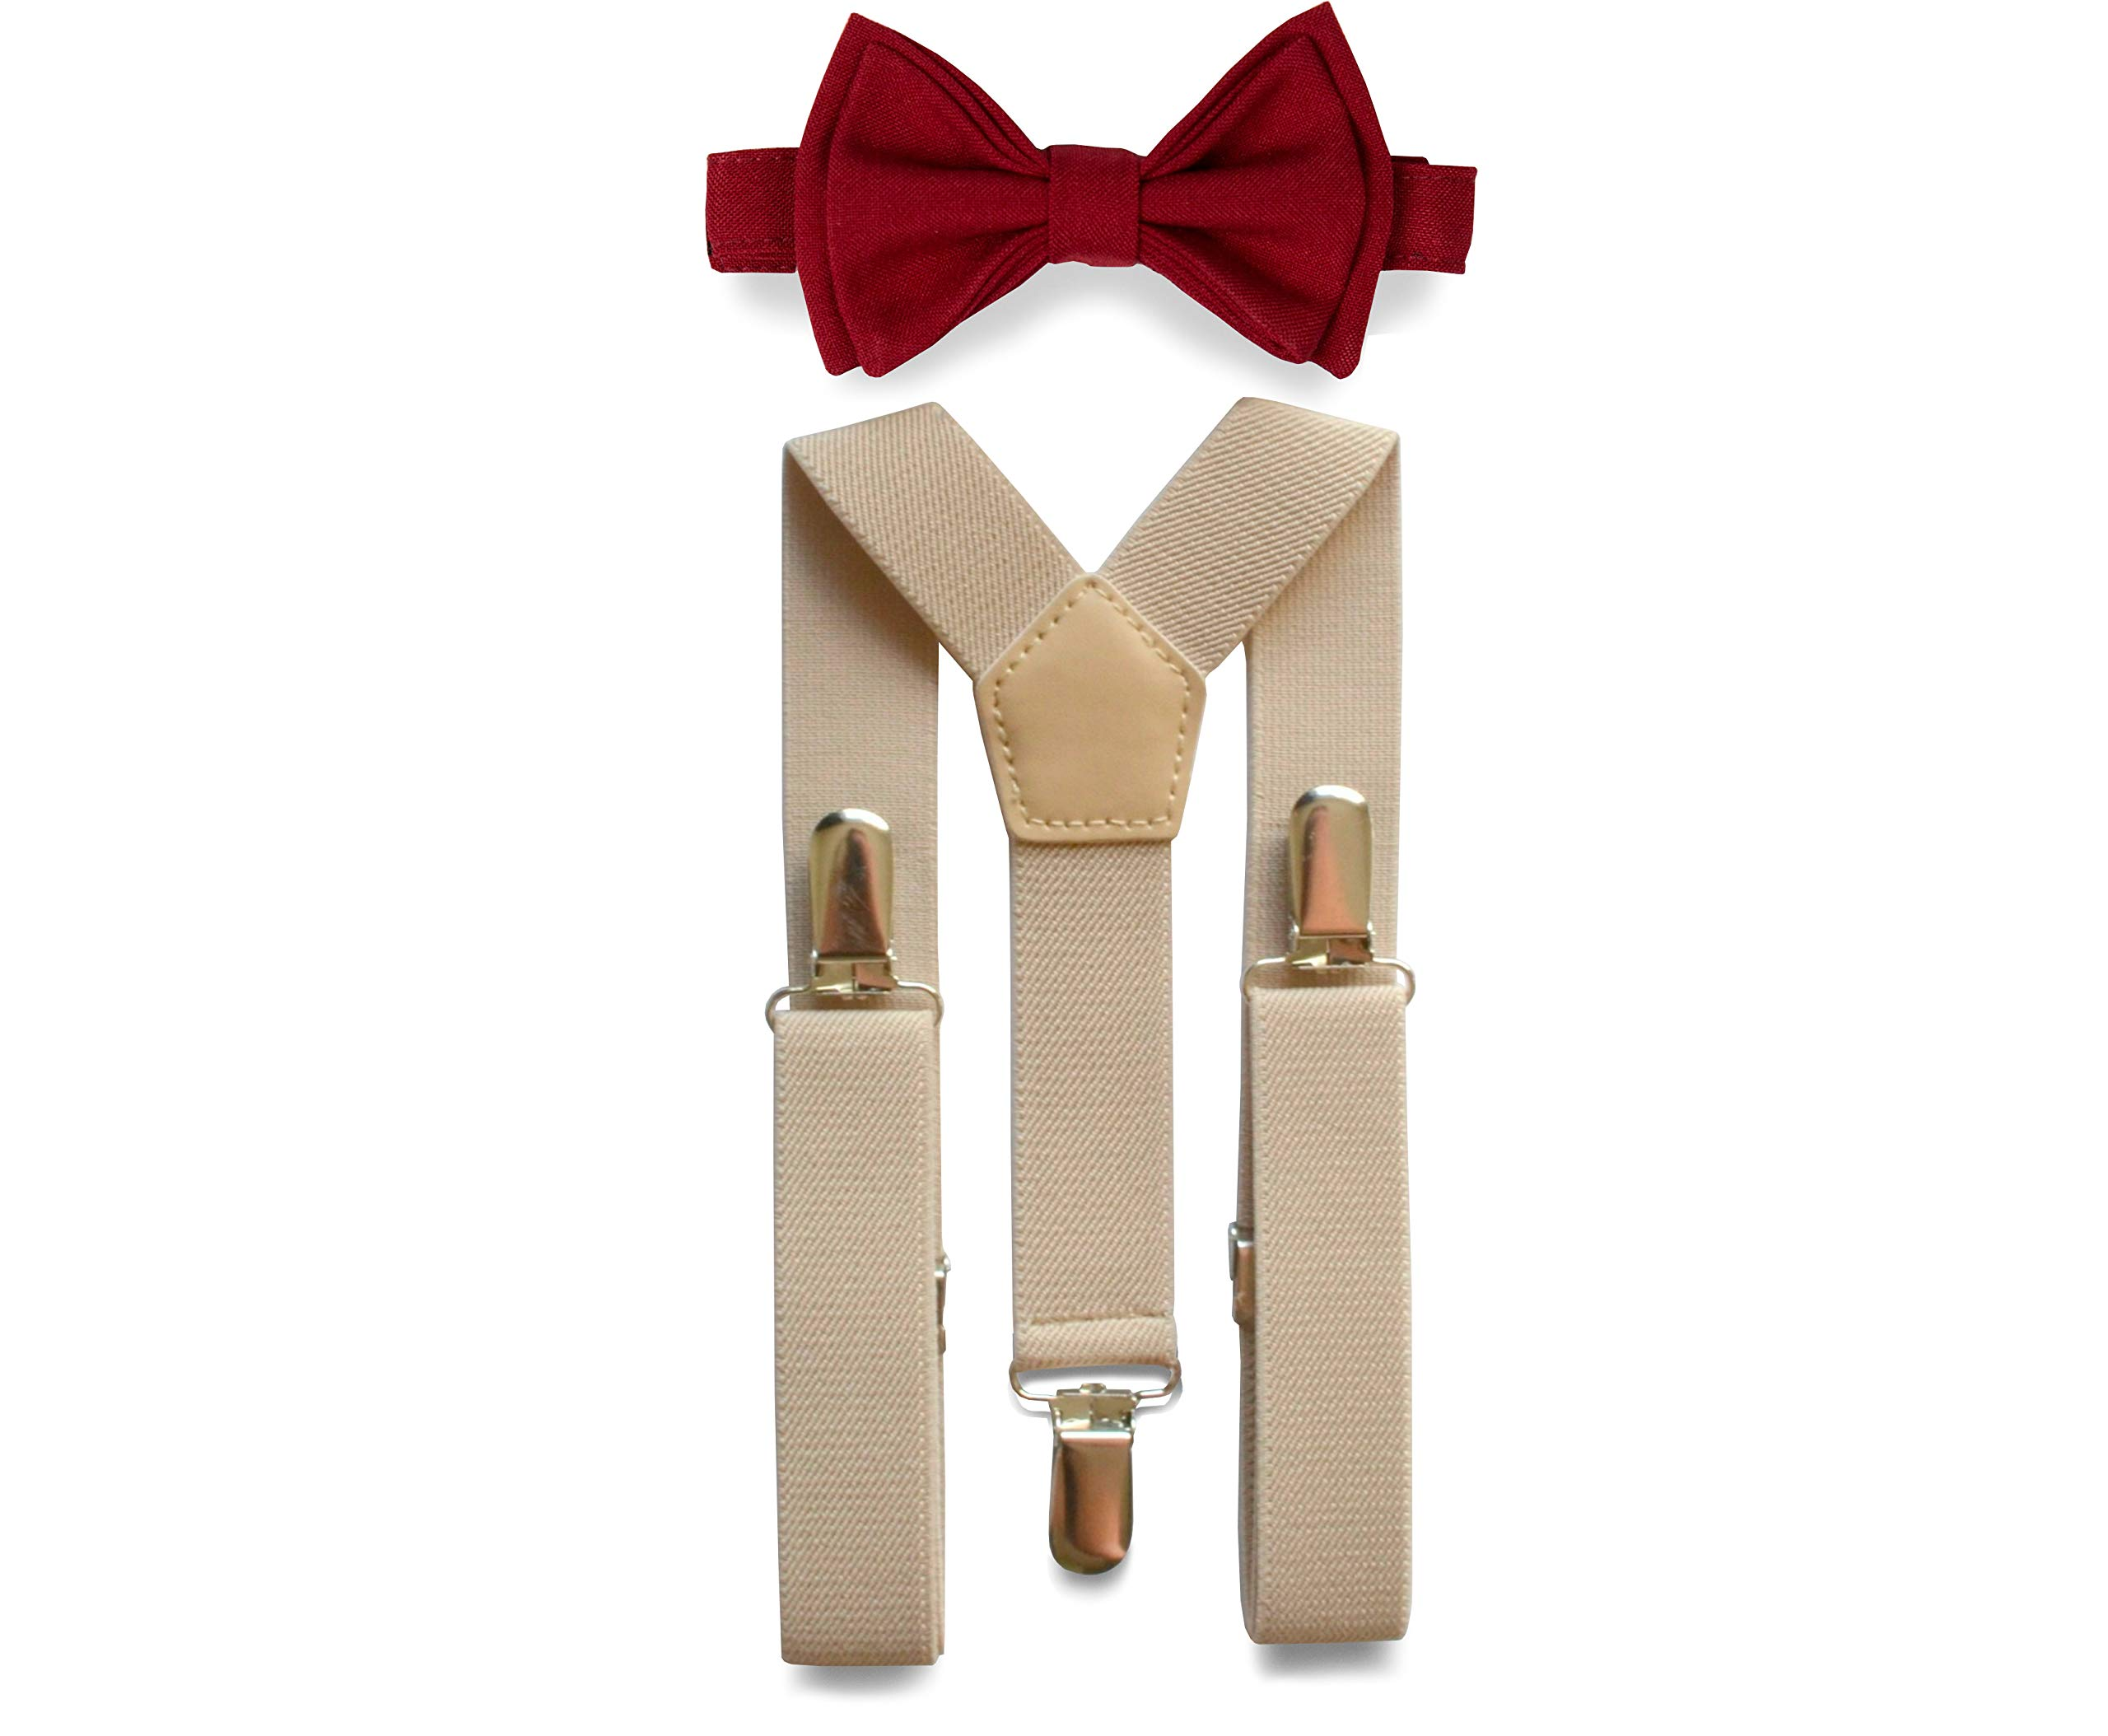 Tan Suspenders & Bow Tie Set for Baby Toddler Boy Teen Men (5. Adult (5'8'' - 6'8''), Tan Suspenders, Burgundy Bow Tie) by Armoniia